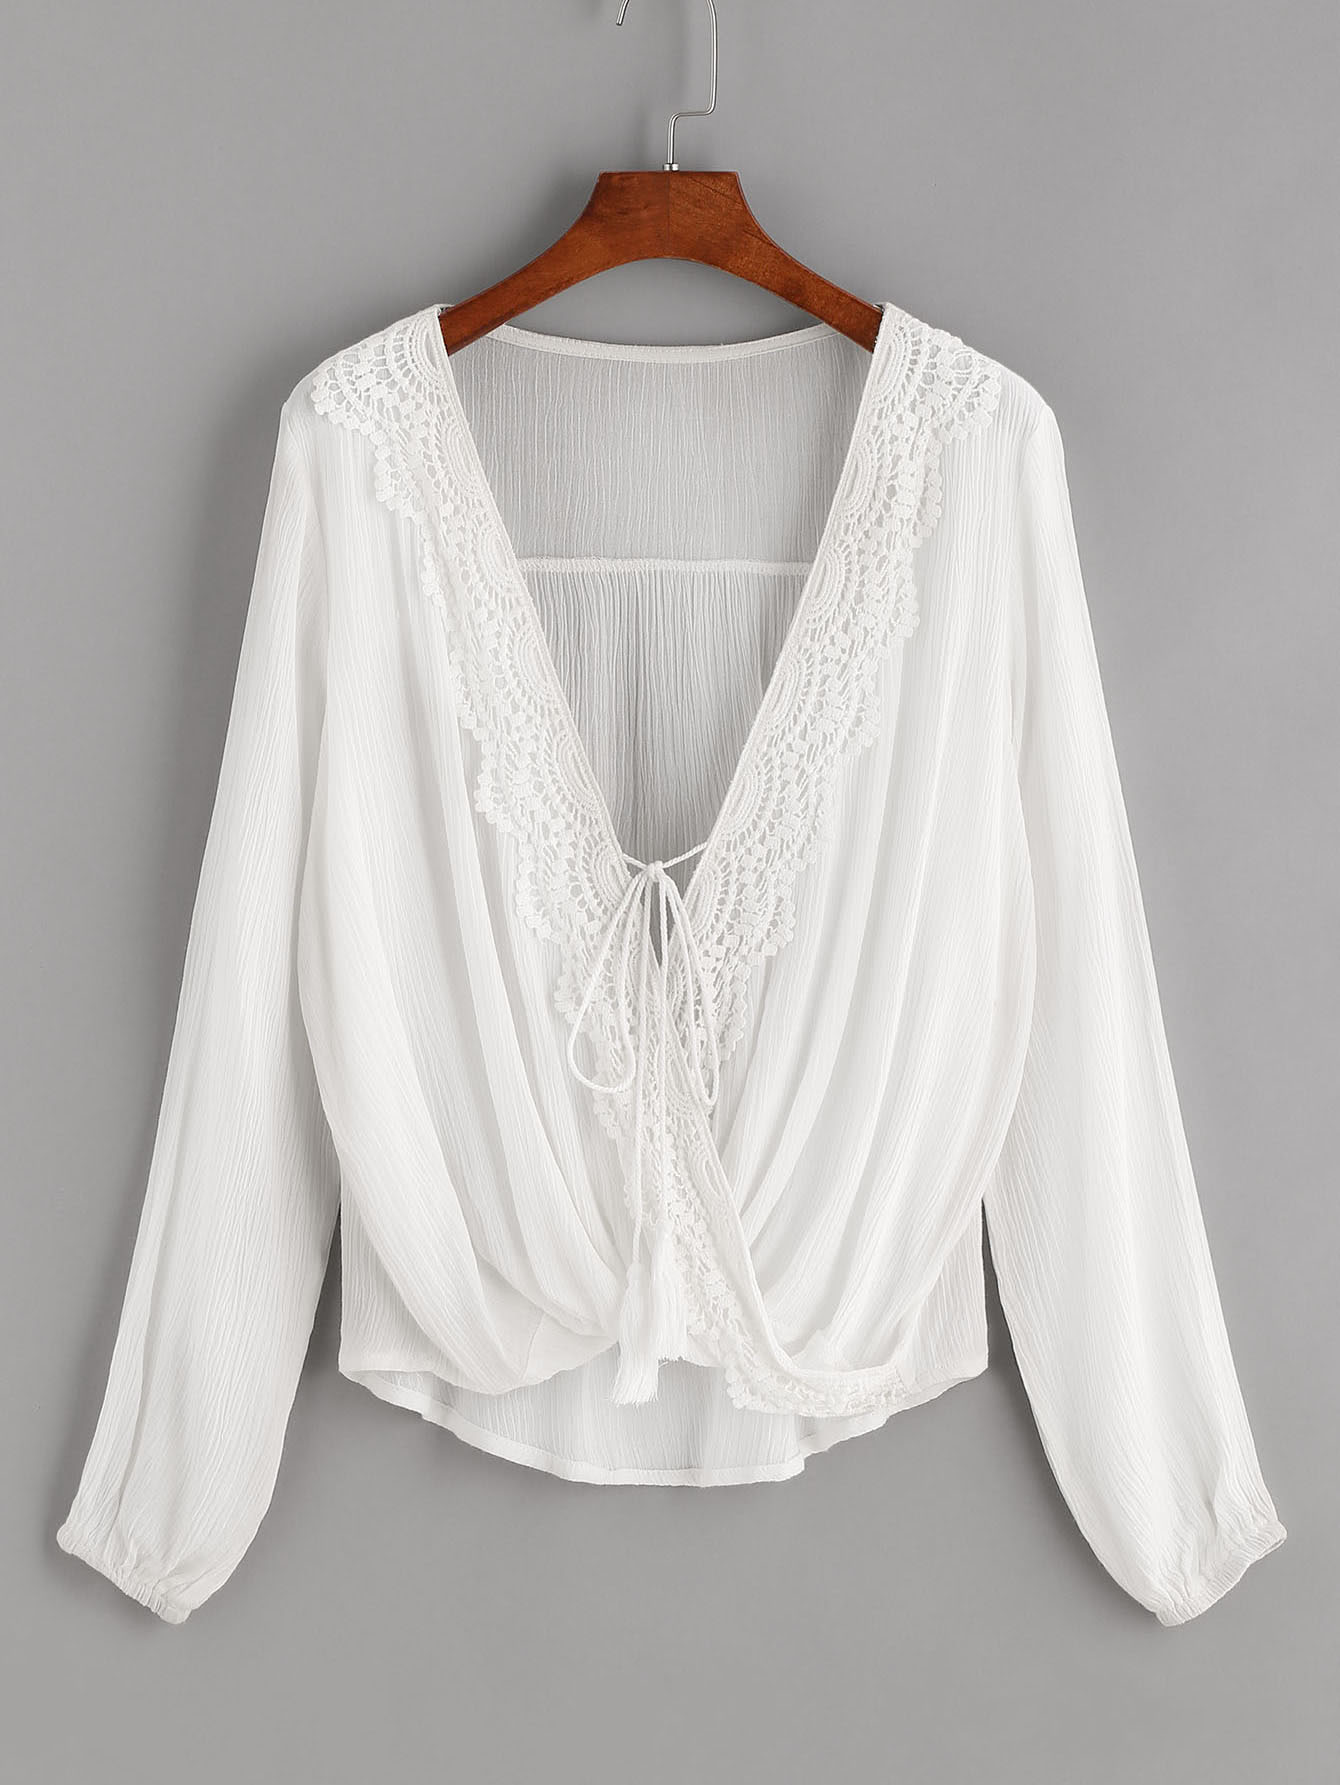 Contrast Crochet Twisted Drape Front Self Tie Tassel Blouse